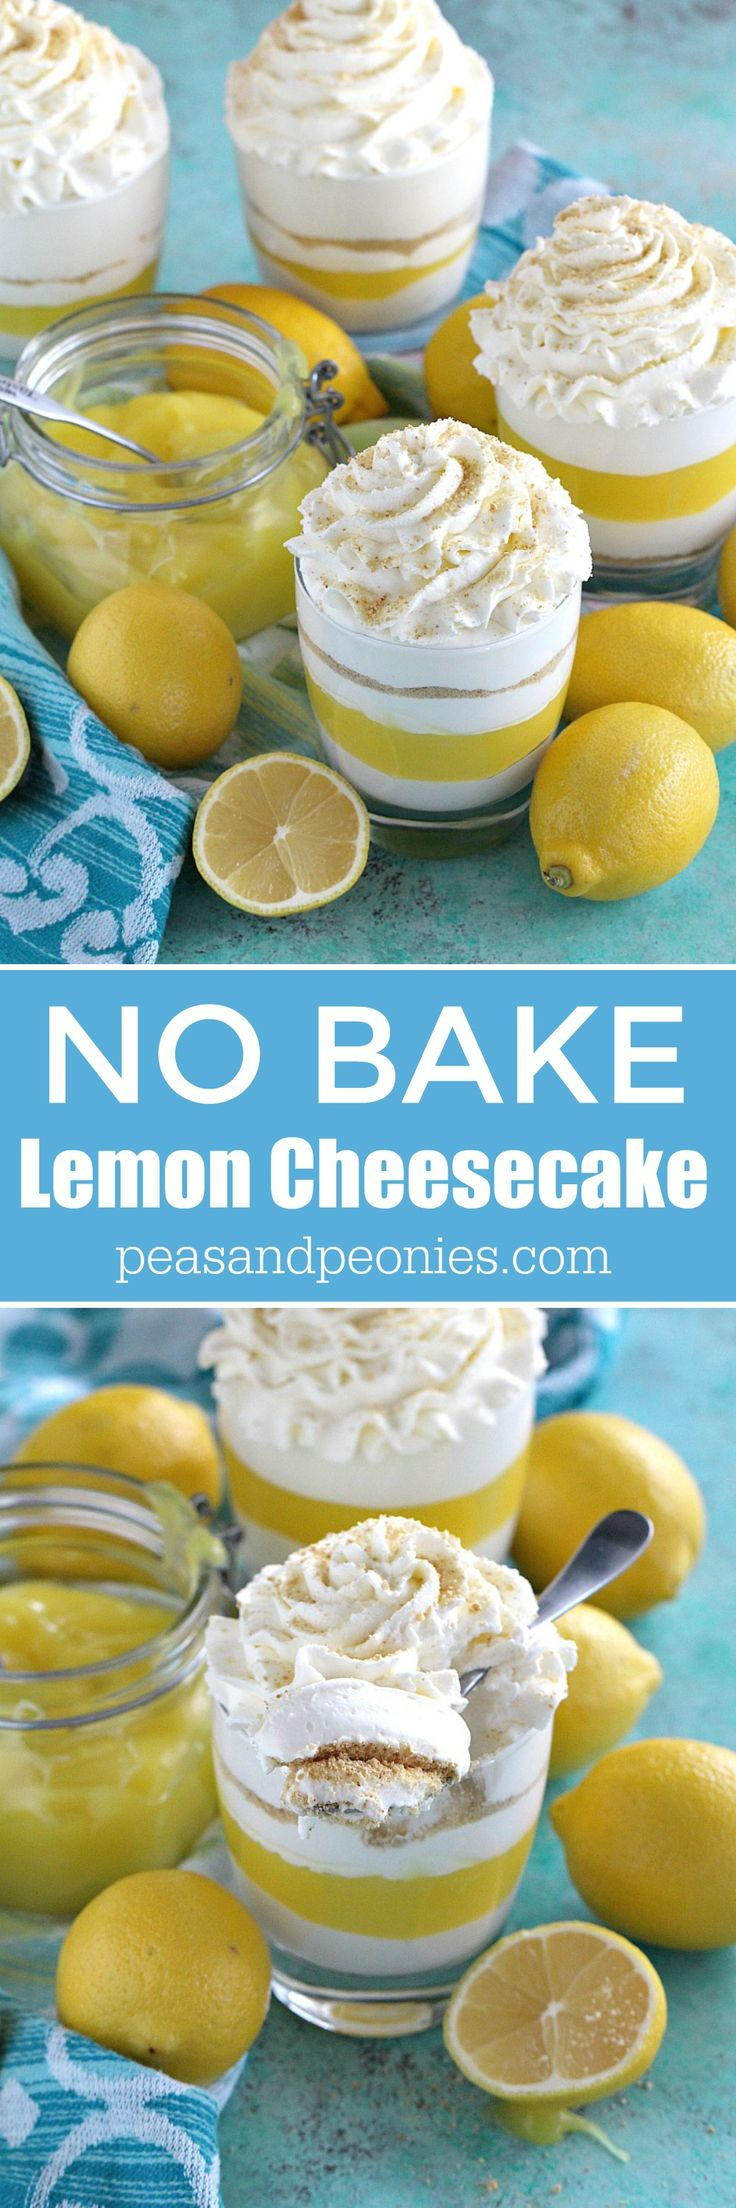 Creamy and easy to make No Bake Lemon Cheesecake layered with graham cracker crumbs, sweet and tangy lemon curd and topped with soft whipped cream.